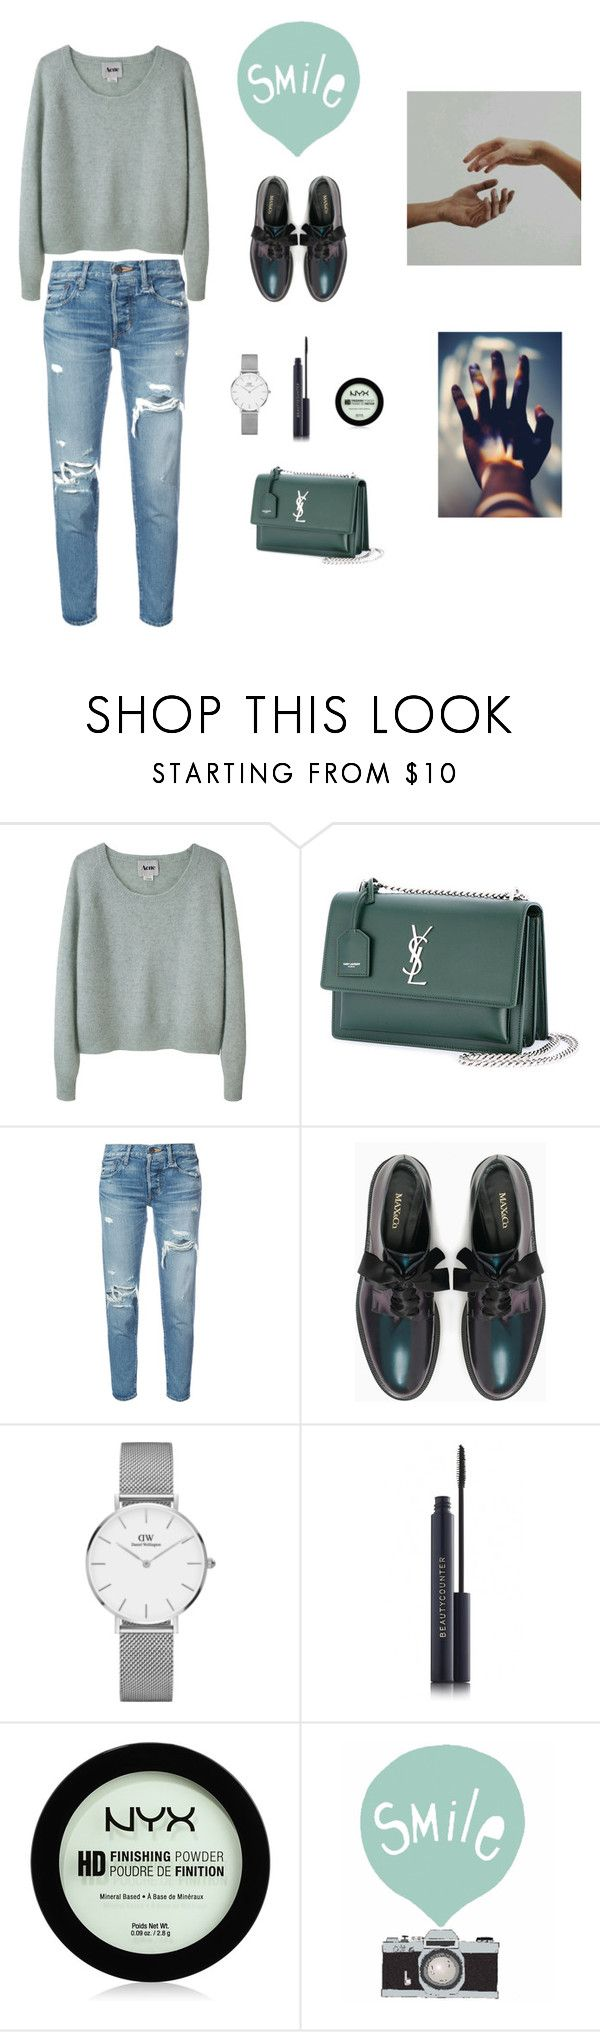 """""""Smile"""" by fairysworld ❤ liked on Polyvore featuring Acne Studios, Yves Saint Laurent, moussy, Max&Co., Daniel Wellington, NYX and Seventy Tree"""